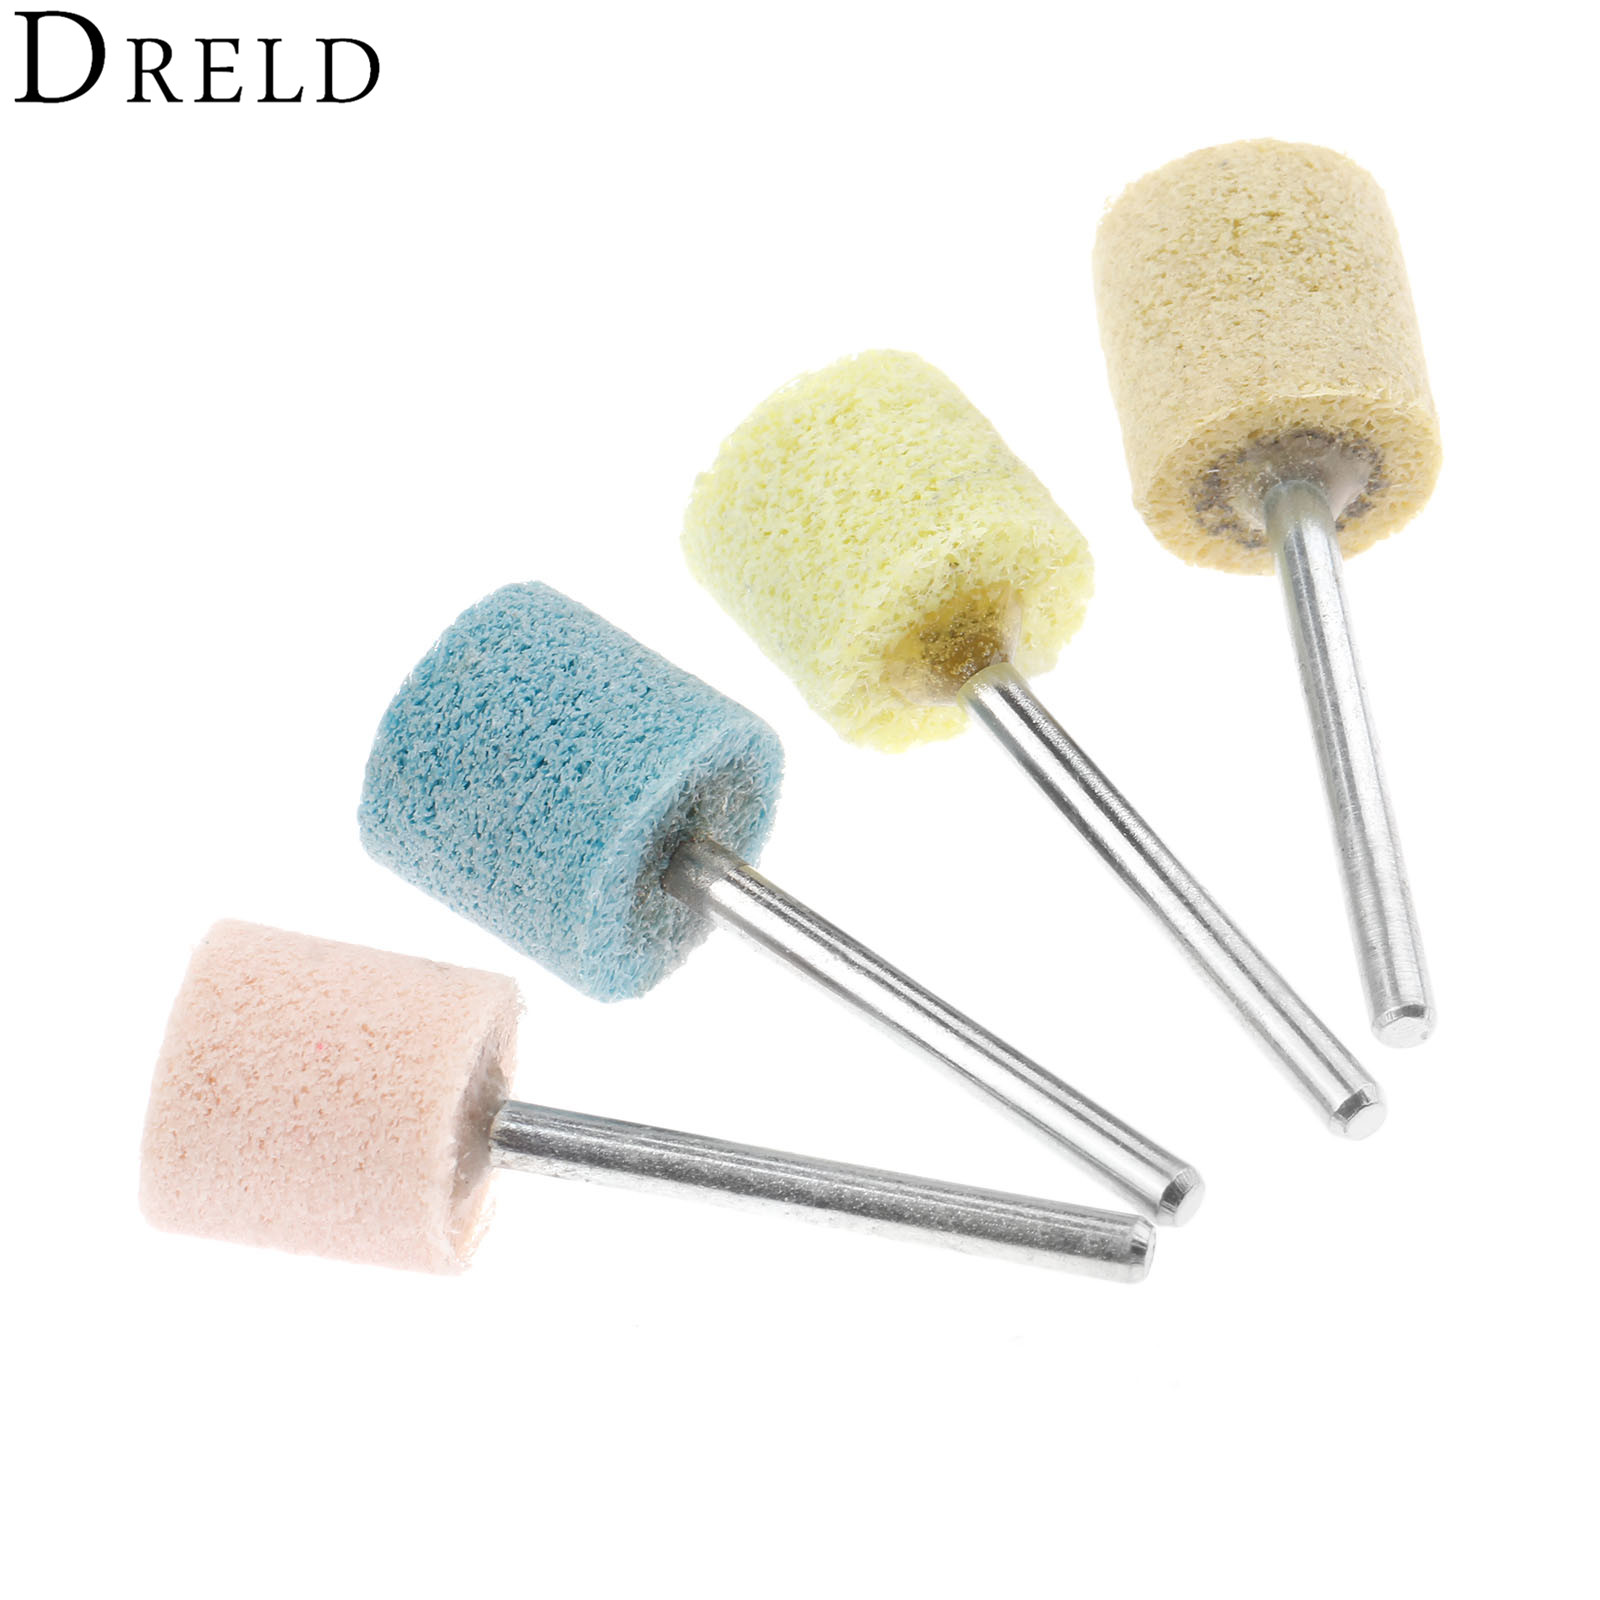 DRELD 4Pcs 3mm Shank 150-600# Nylon Abrasive Point Polishing Grinding Head Buffing Polishing Wheel For Dremel Rotary Tools